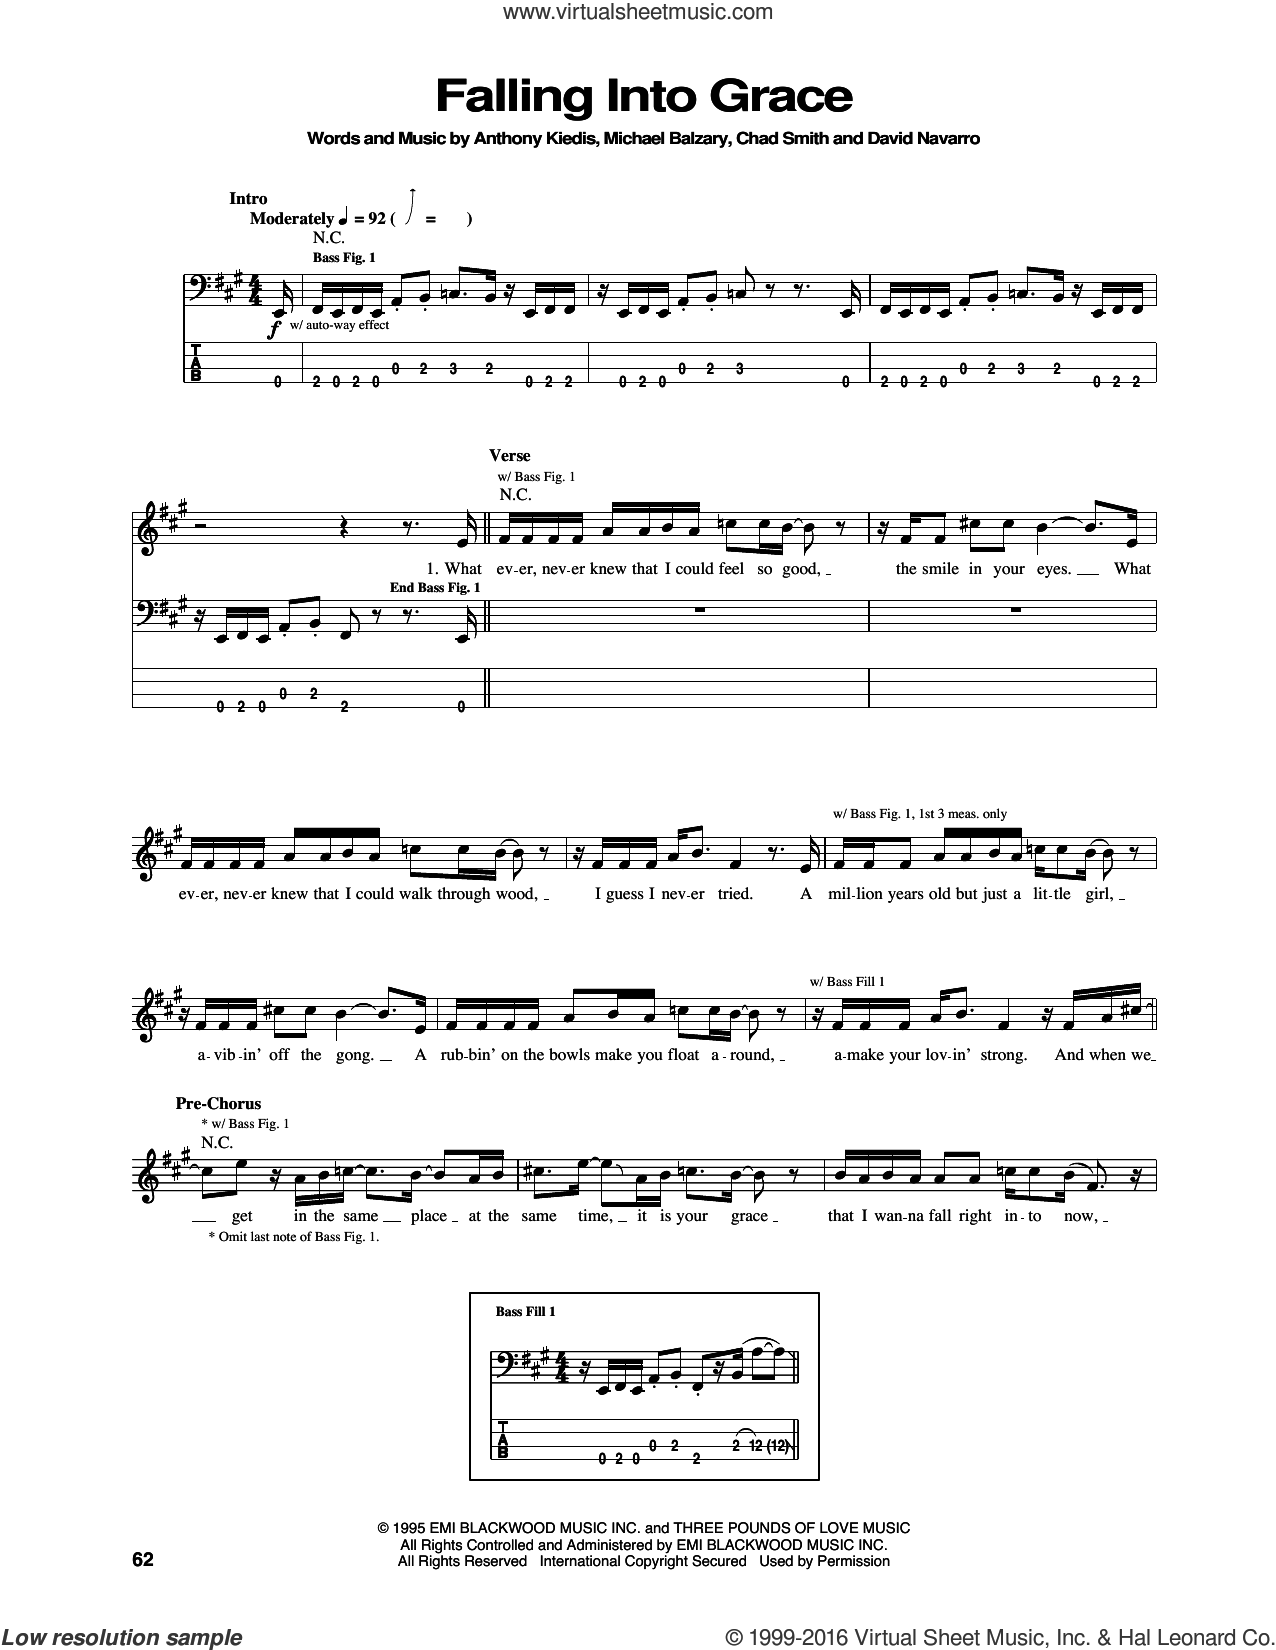 Falling Into Grace sheet music for bass (tablature) (bass guitar) by Red Hot Chili Peppers, Anthony Kiedis, Chad Smith, David Navarro and Flea, intermediate skill level